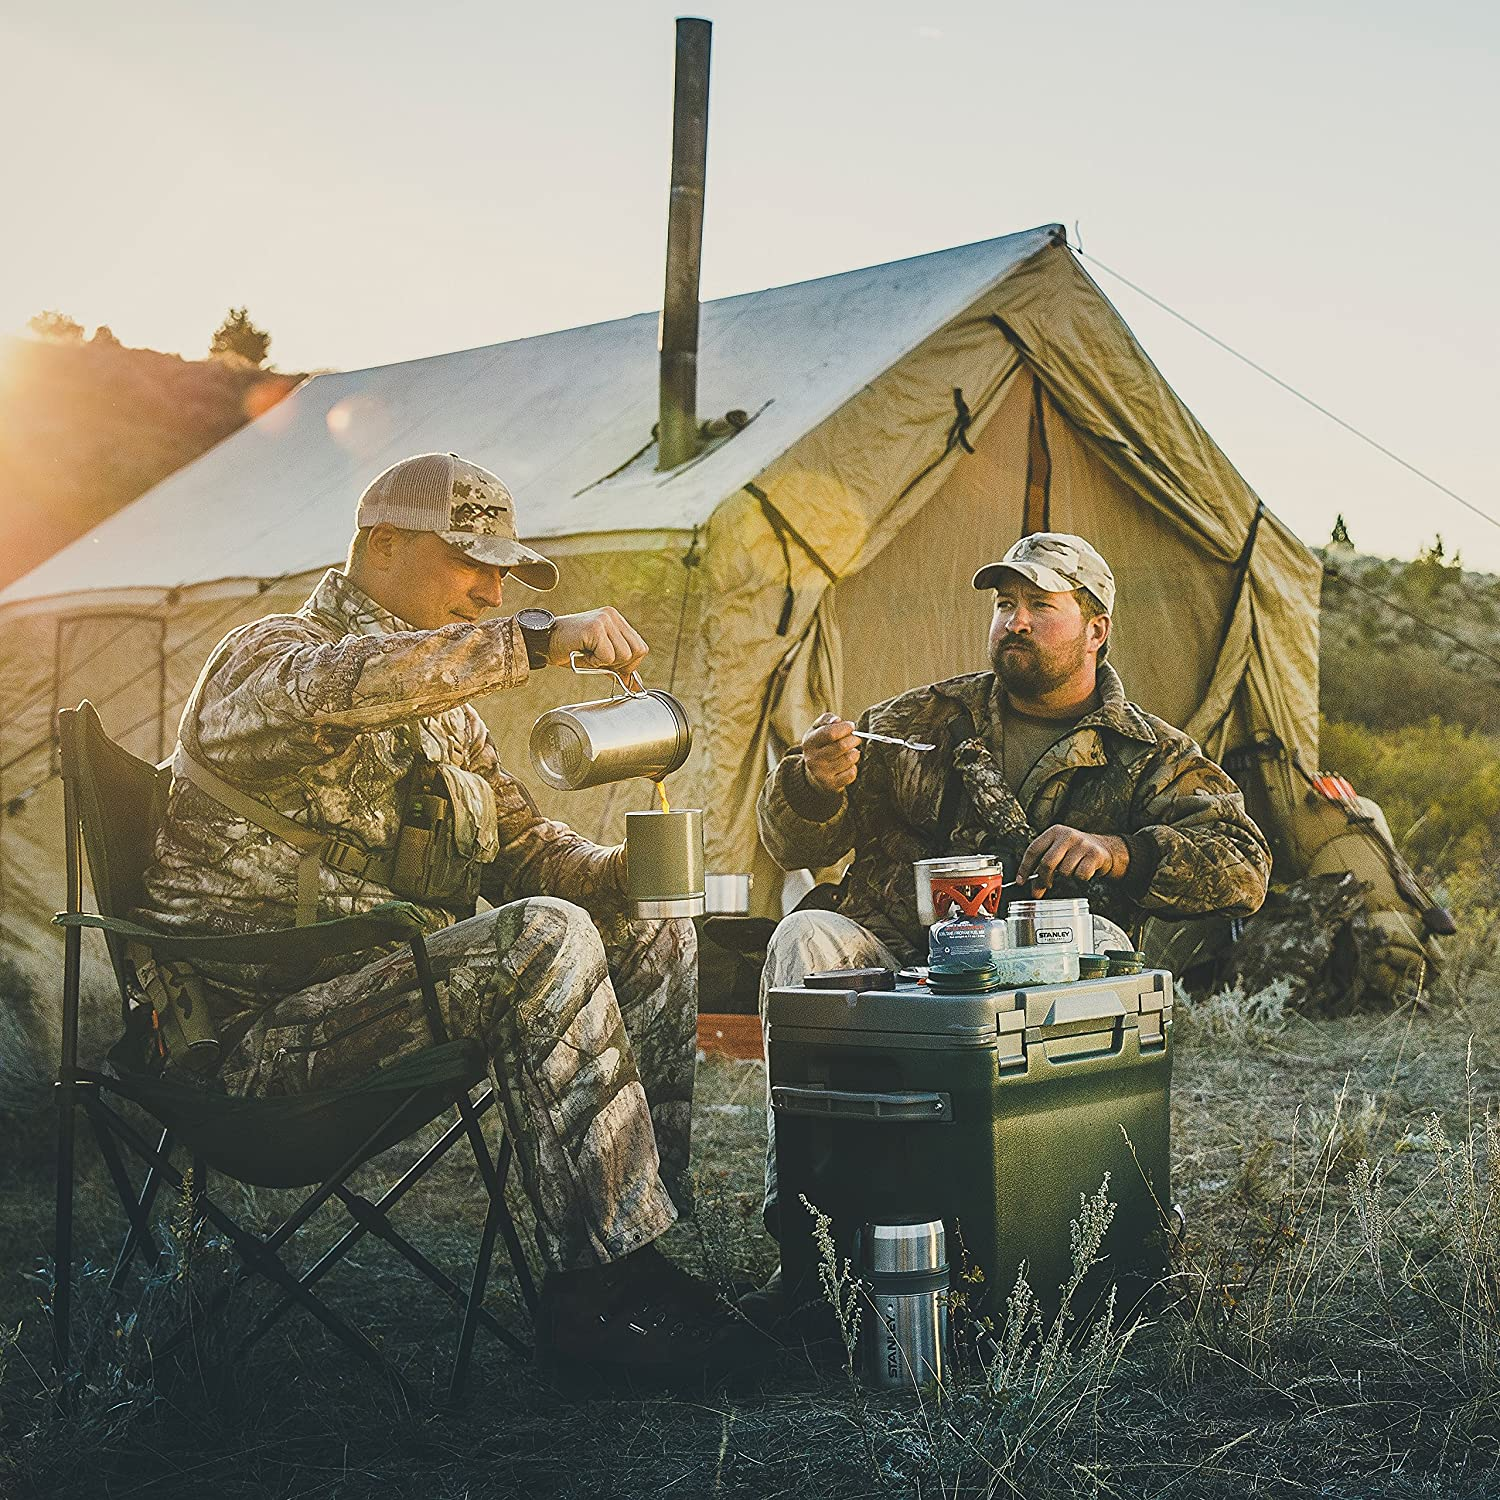 Multi-functional Brews, Boils And Cooks made our list of unique camping gifts for men which are some of the most cool camping gifts for special occasions and the CampingForFoodies hand selected best camping gifts for him are awesome for the rest of the family too!